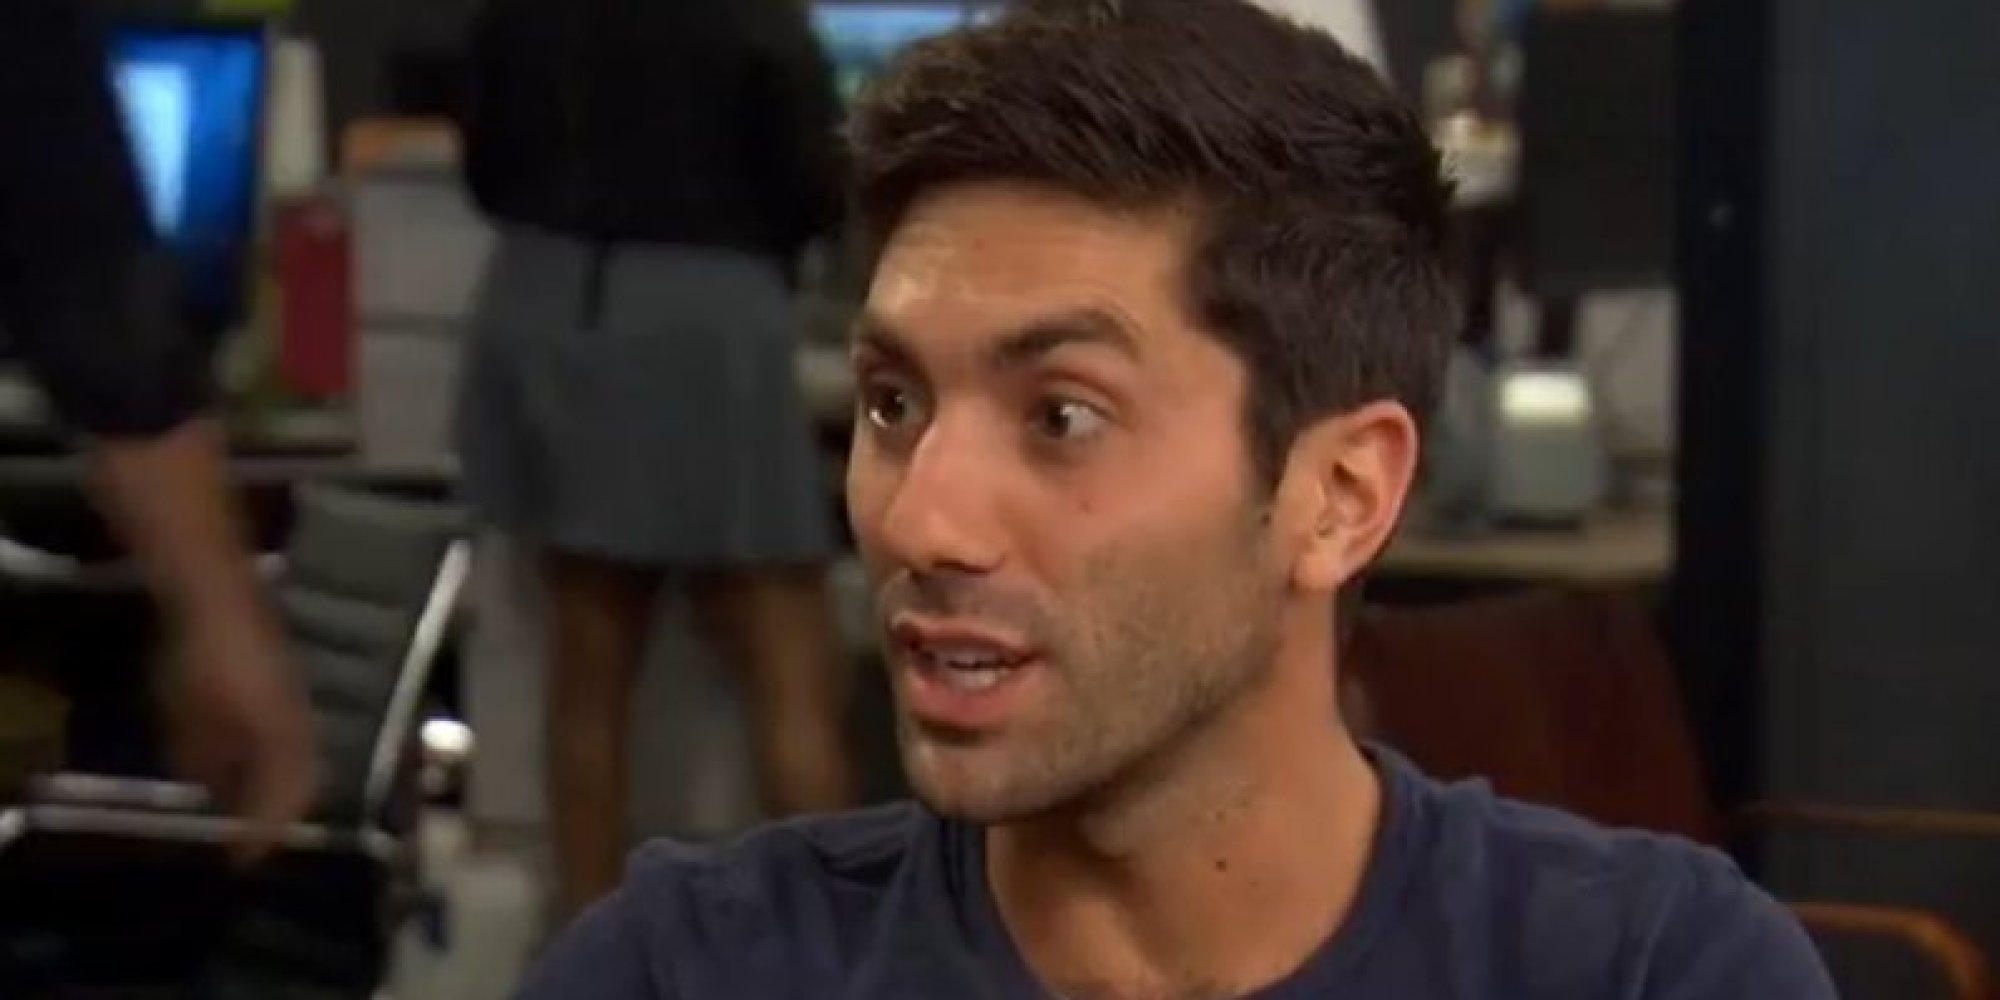 Nev Schulman Explains How To Avoid Getting Catfished ...